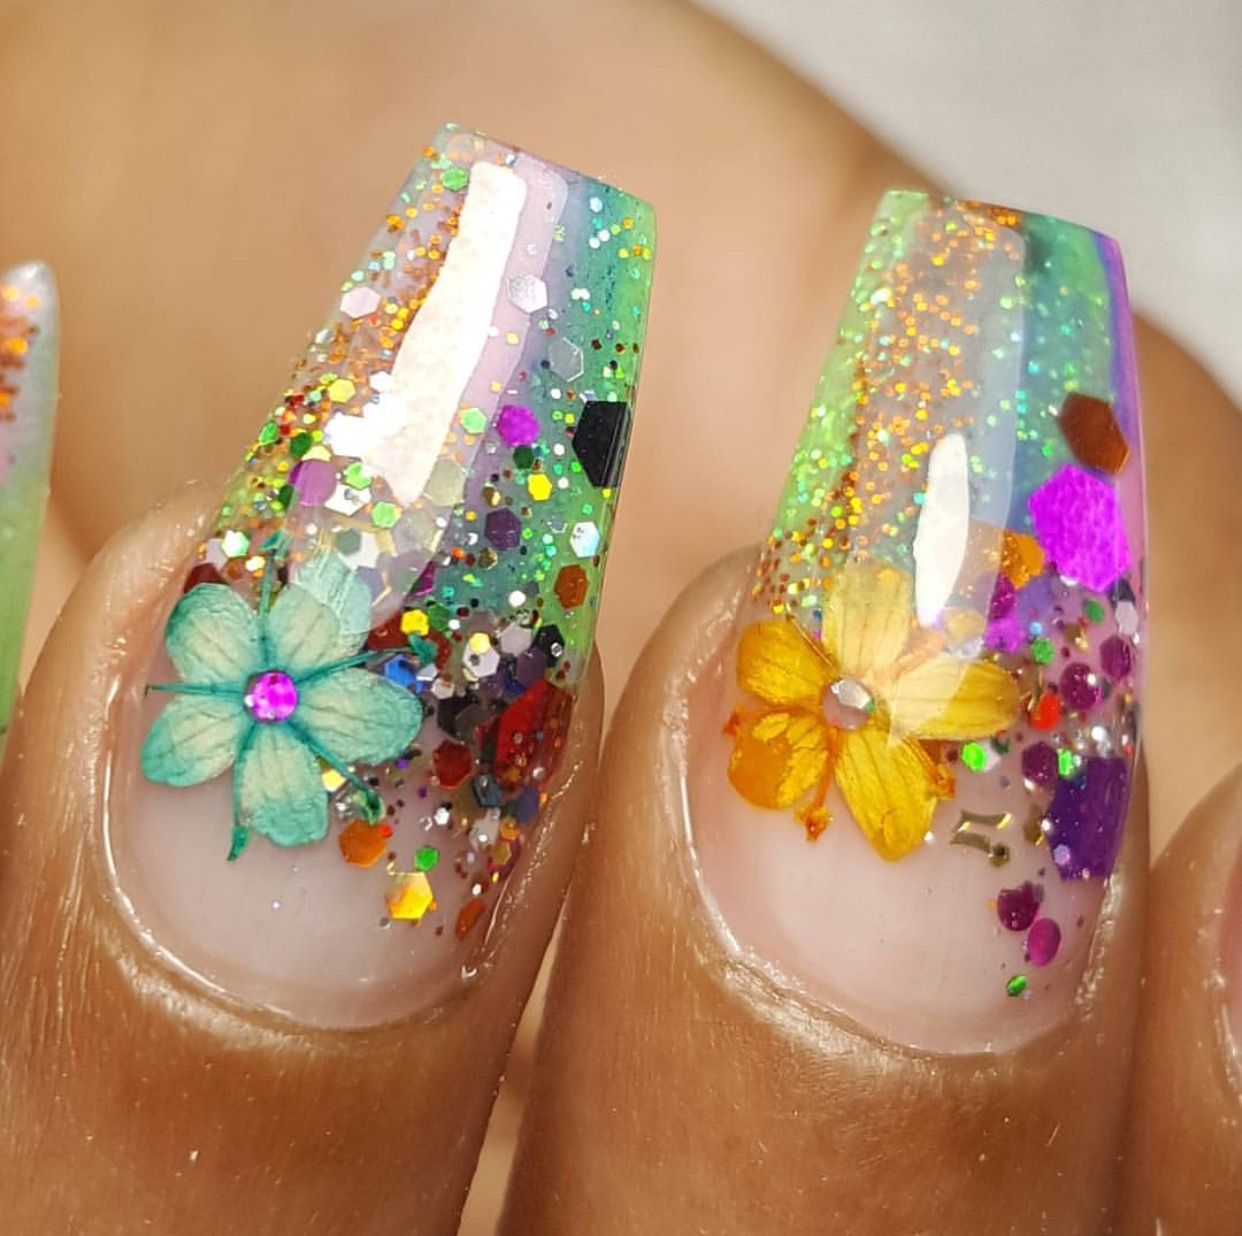 Uñas De Gel Decoradas Con Flores Pin De Marcela Osti En Nails Pinterest